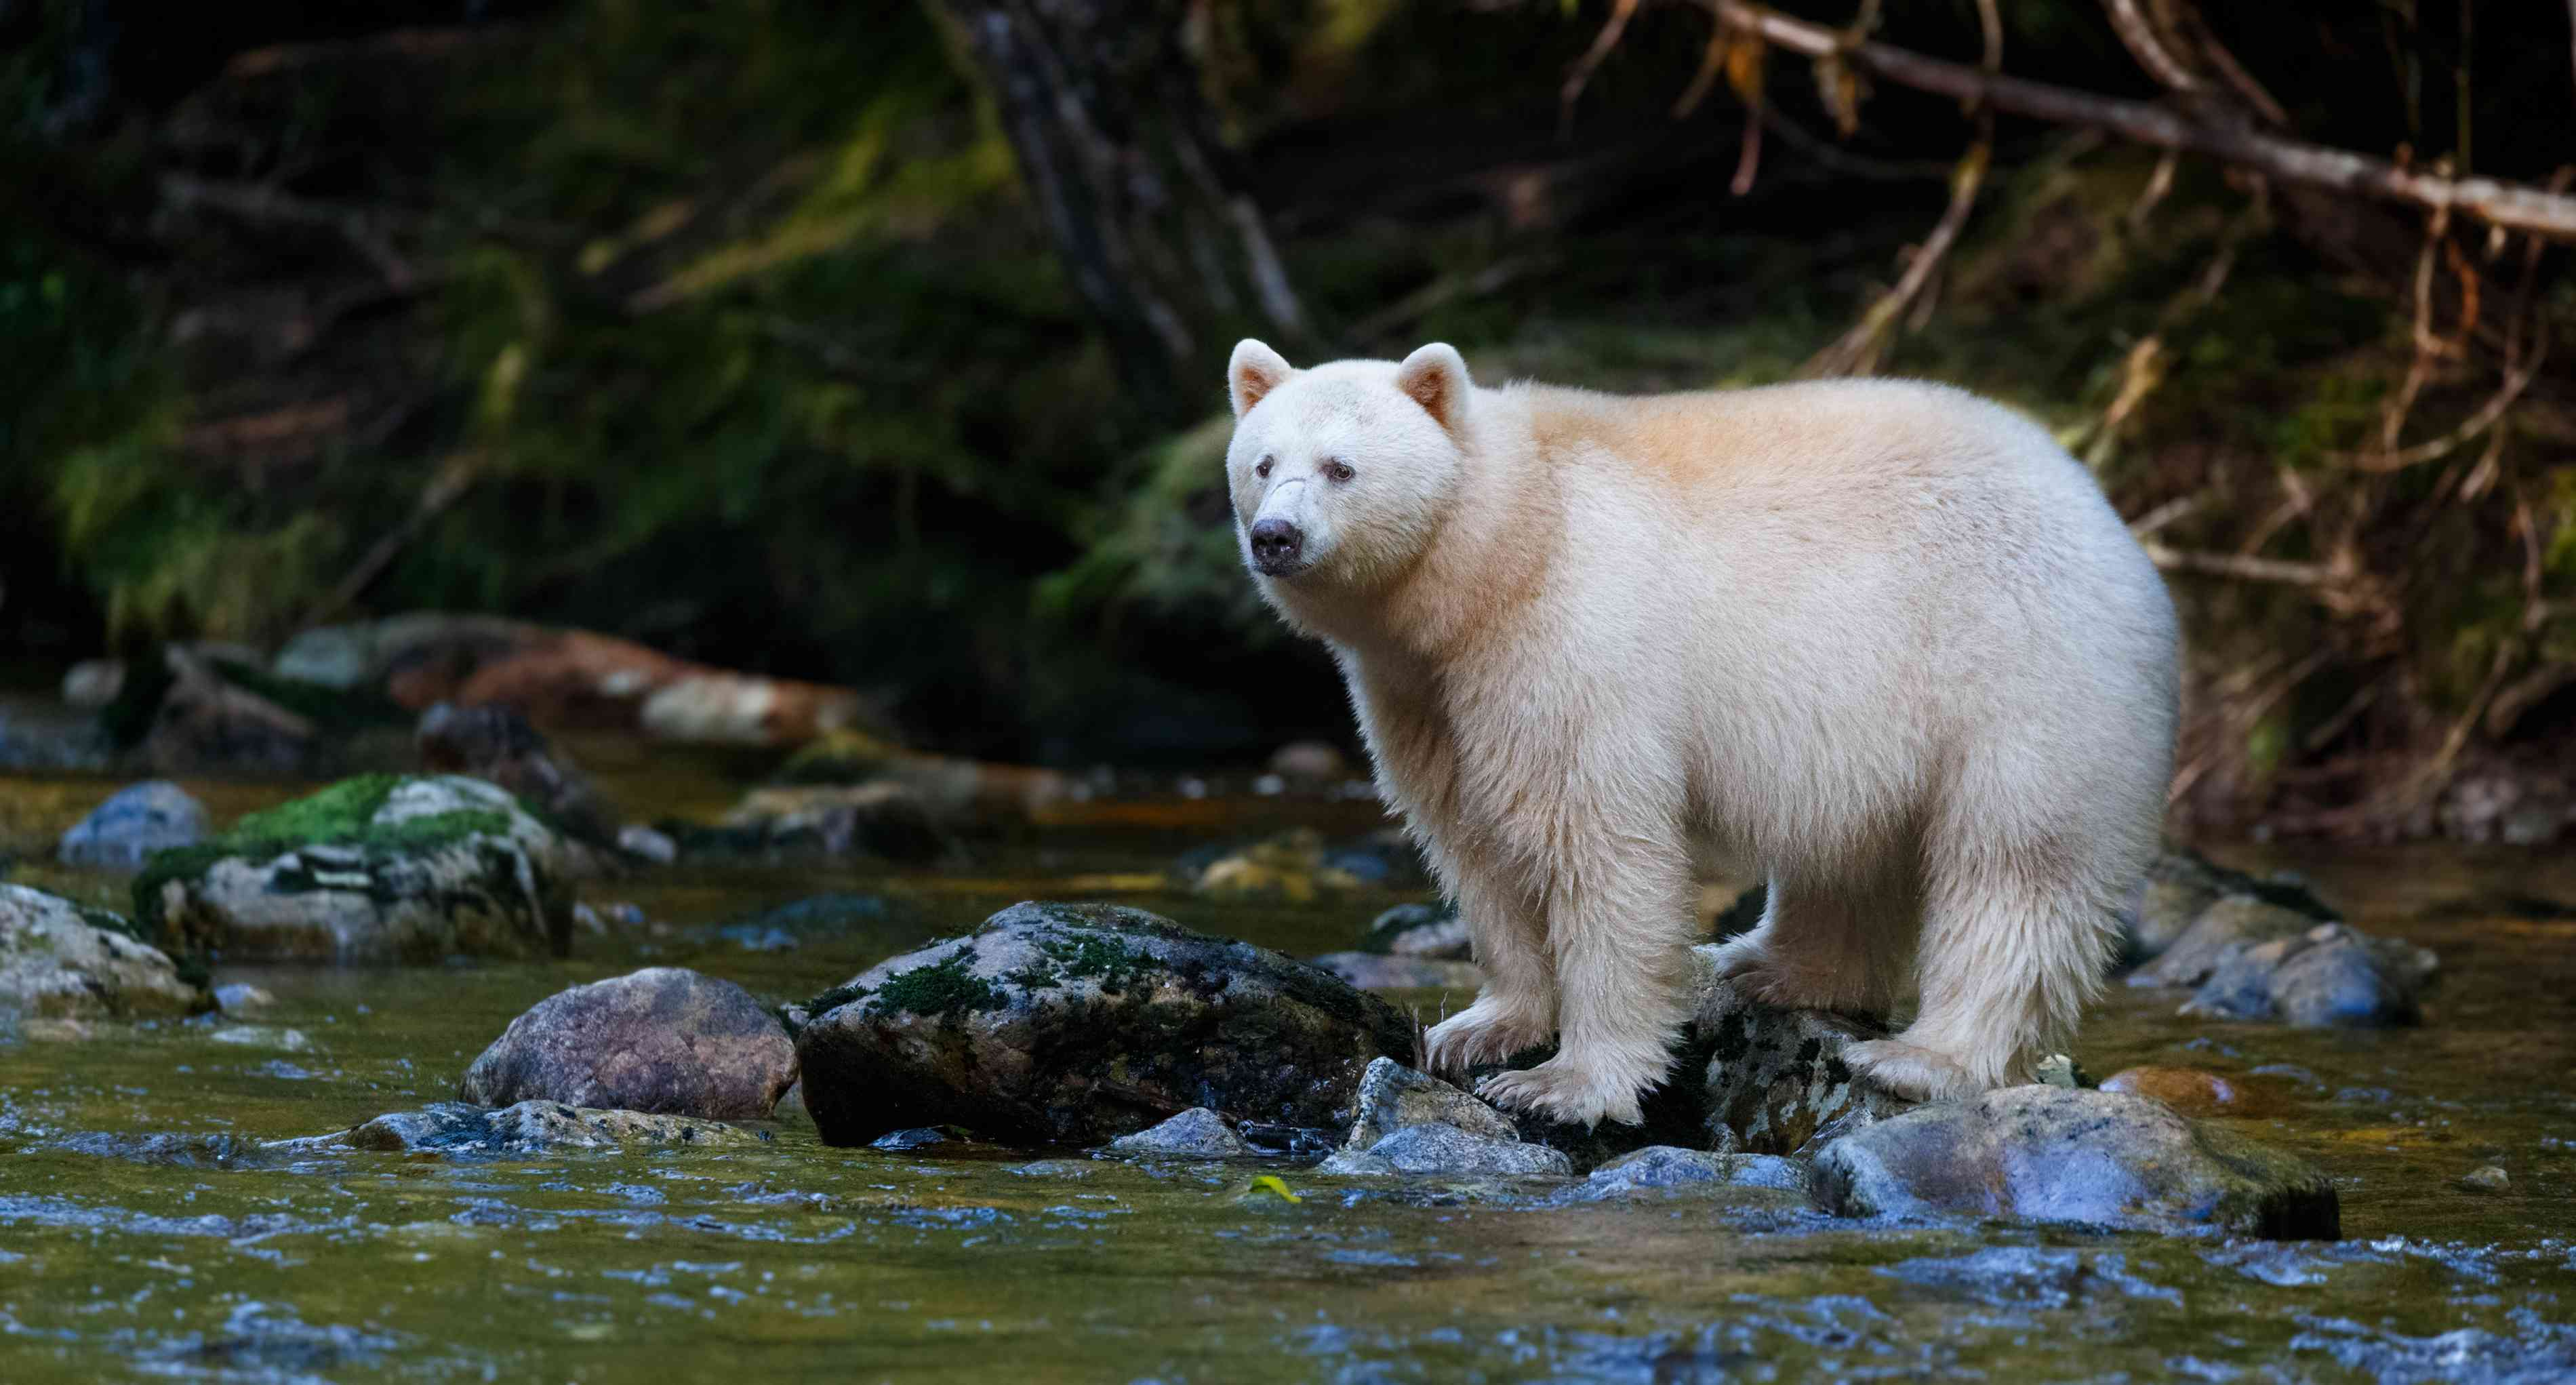 A white Kermode or spirit bear in British Columbia standing on ricks in a stream